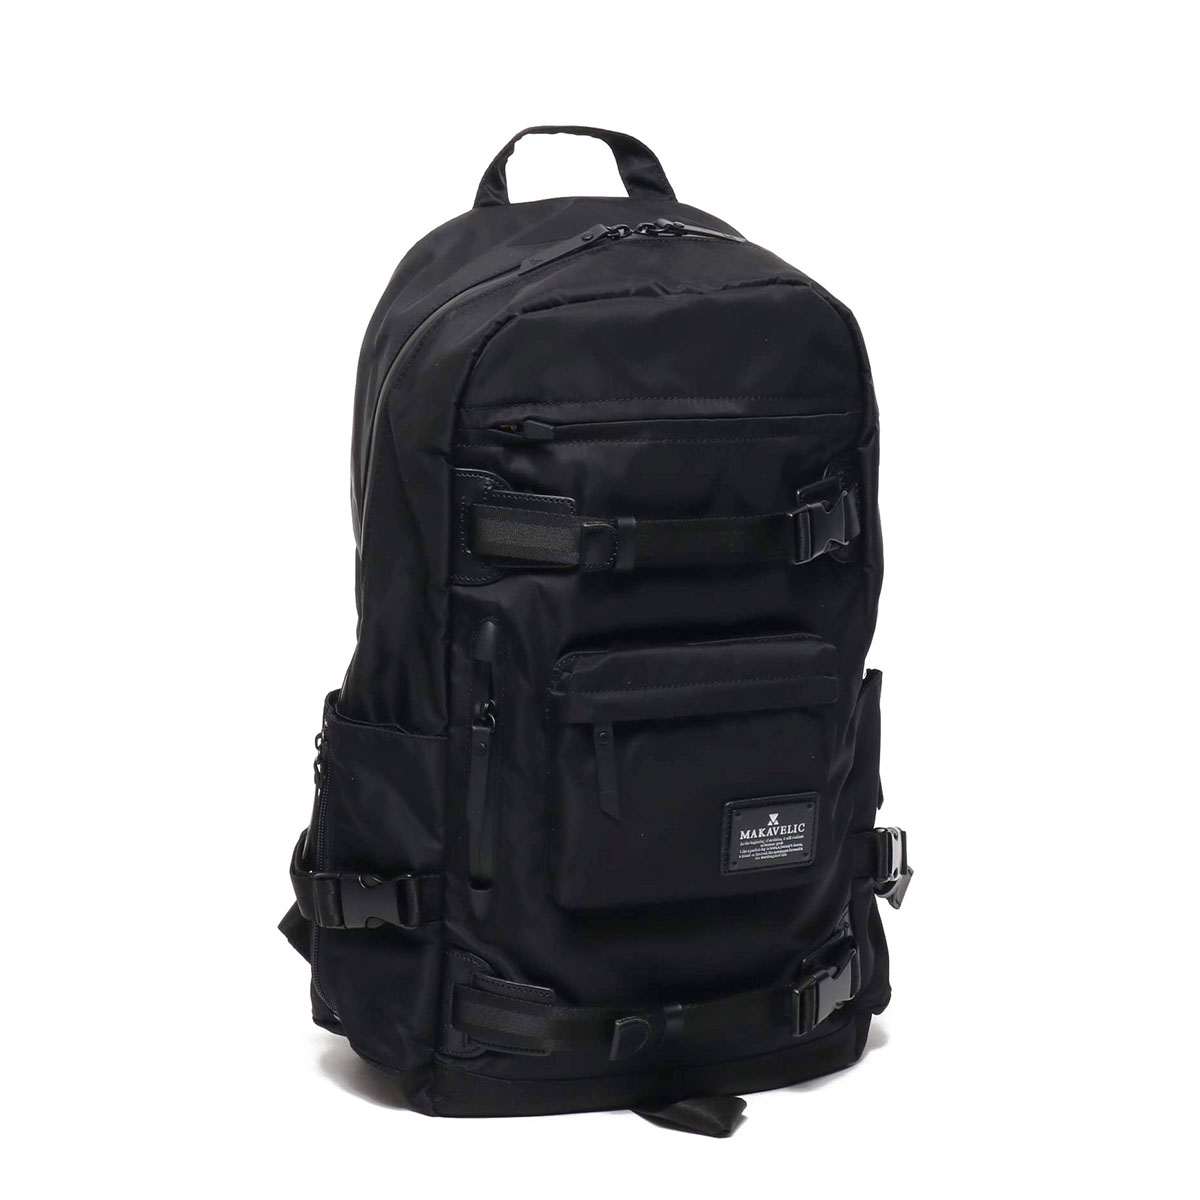 MAKAVELIC SIERRA SUPERIORITY BIND UP 2 BACKPACK(マキャべリック シエラ スーパーアイオリティ バインドアップ 2 バックパック)BLACK【メンズ バックパック】20SP-I